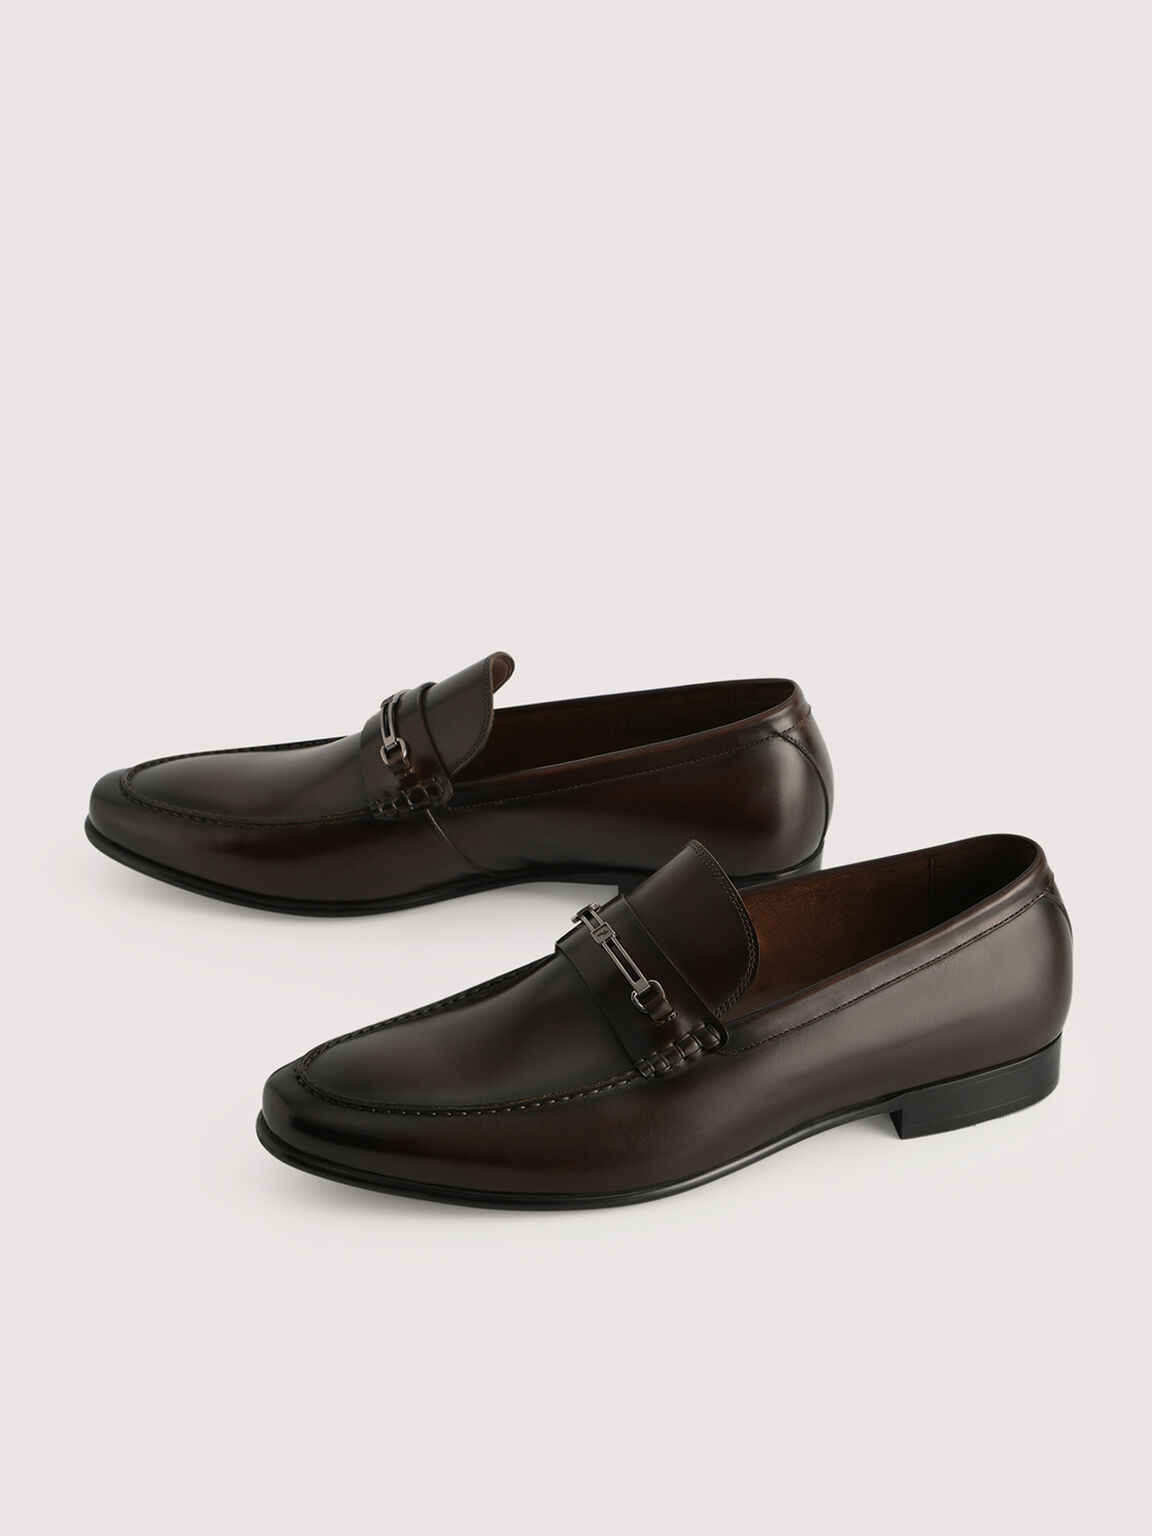 Leather Loafers with Silver Buckle, Dark Brown, hi-res